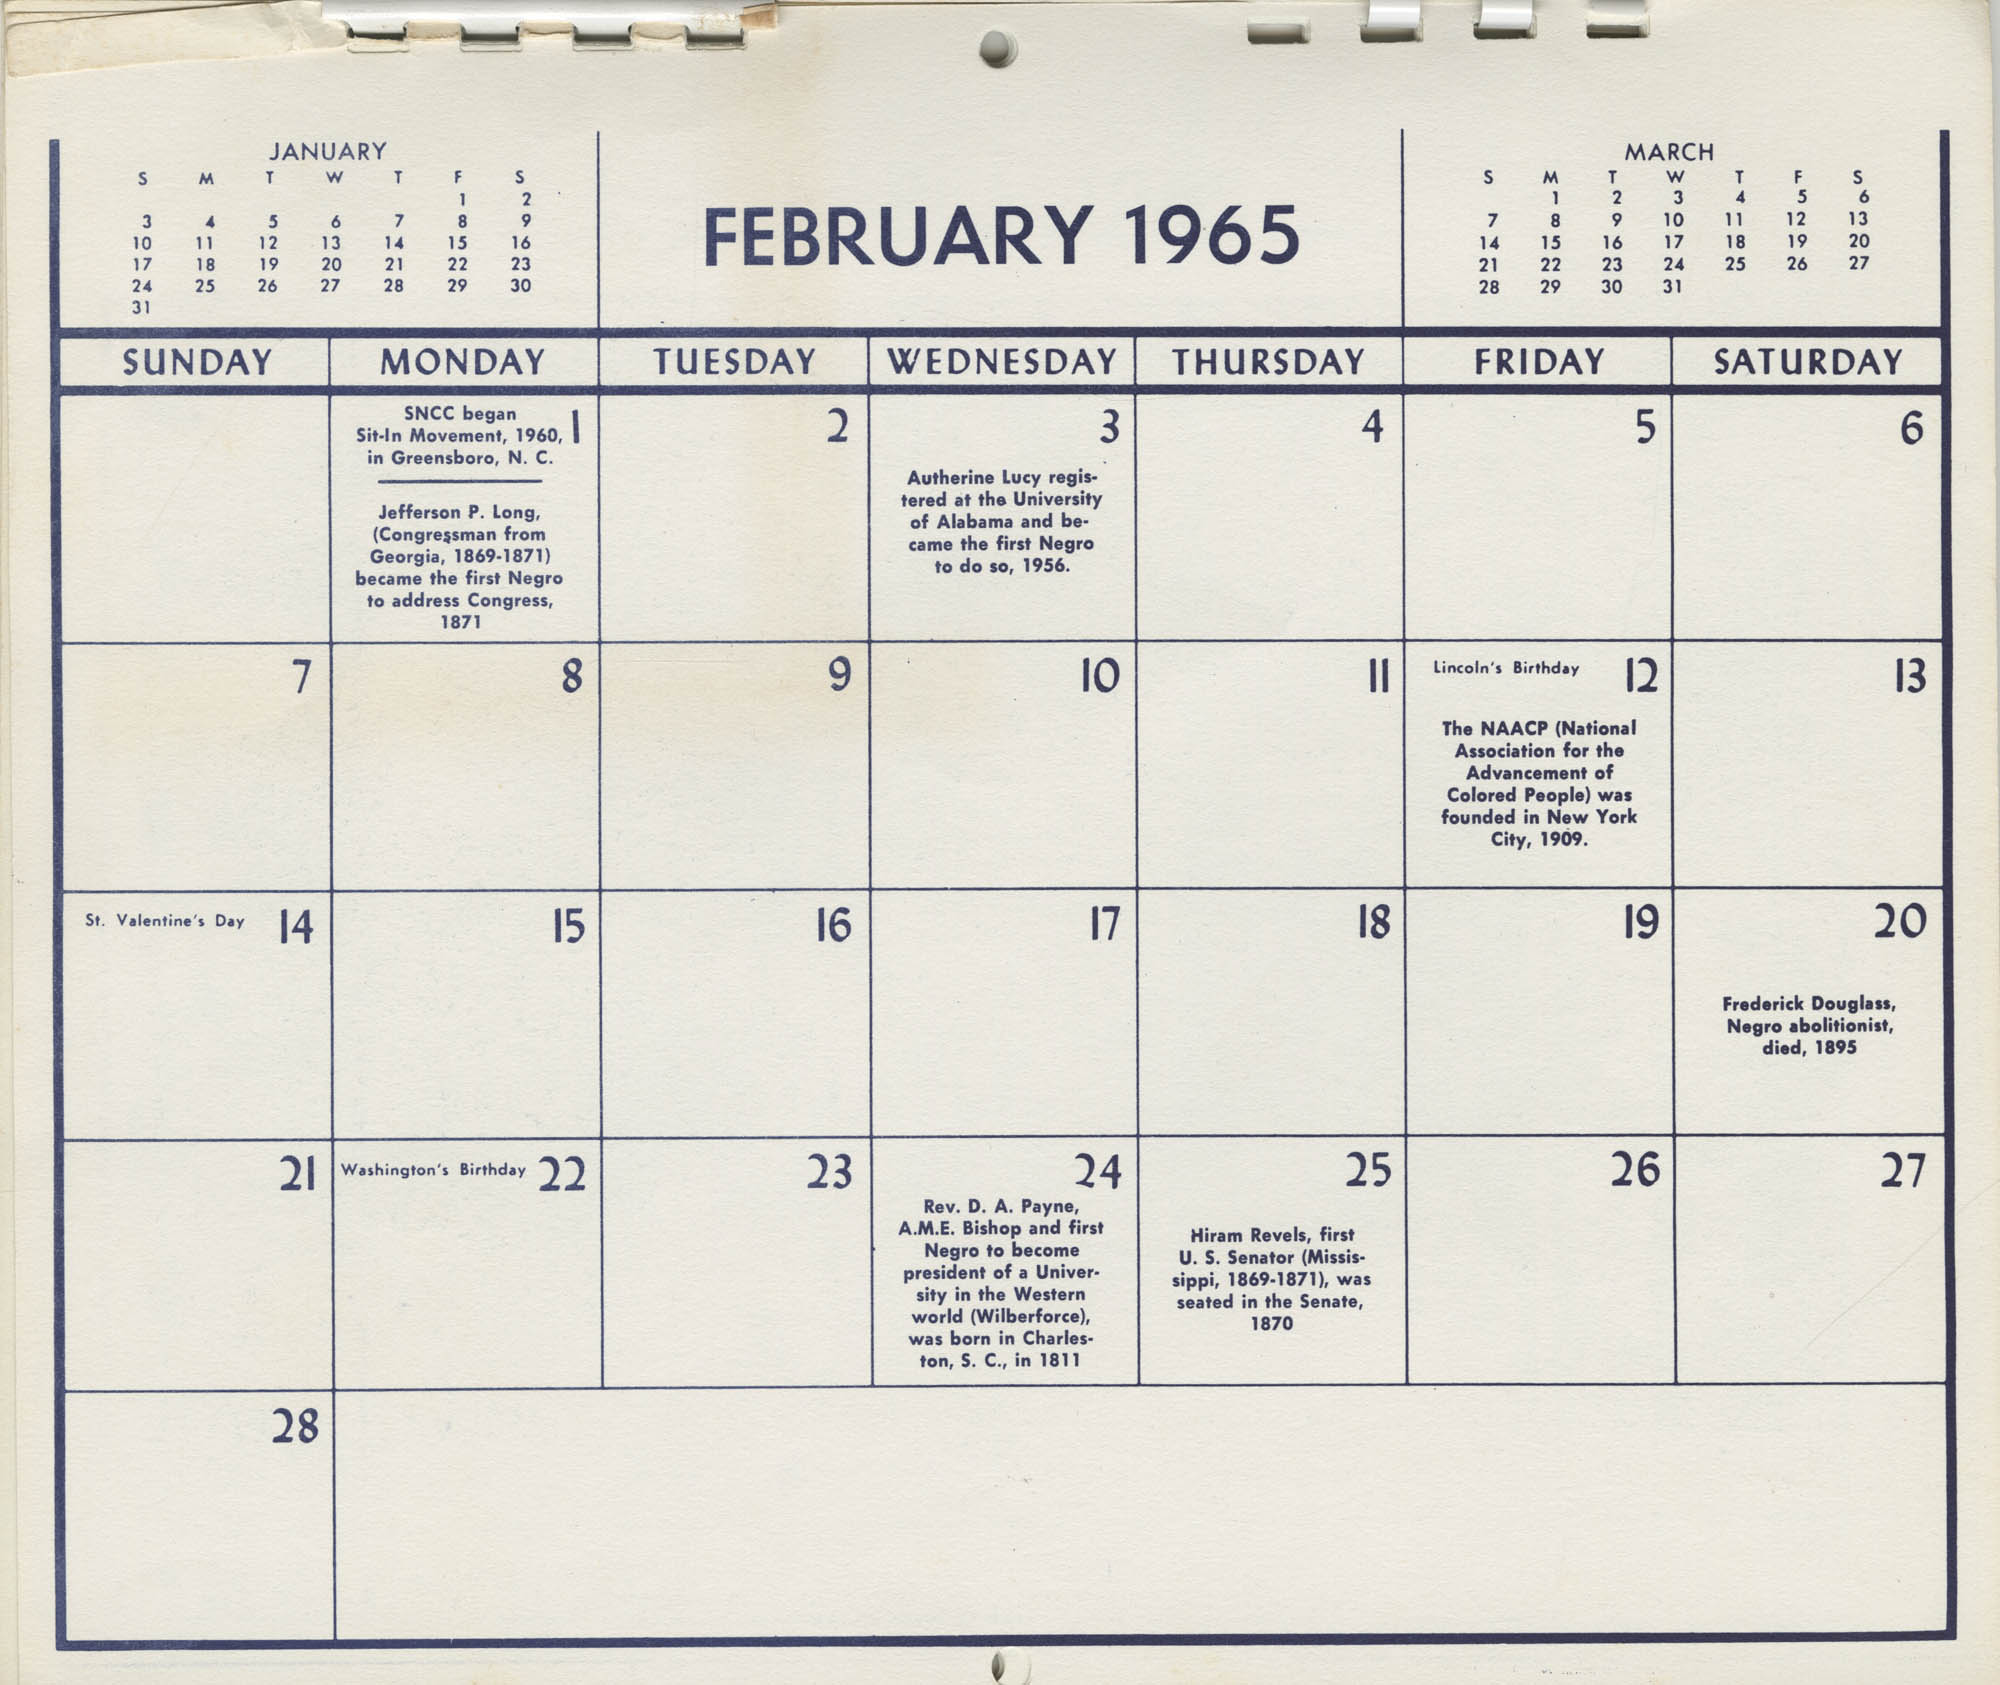 Southern Christian Leadership Conference Newsletter Calendar, February 1965, Bottom